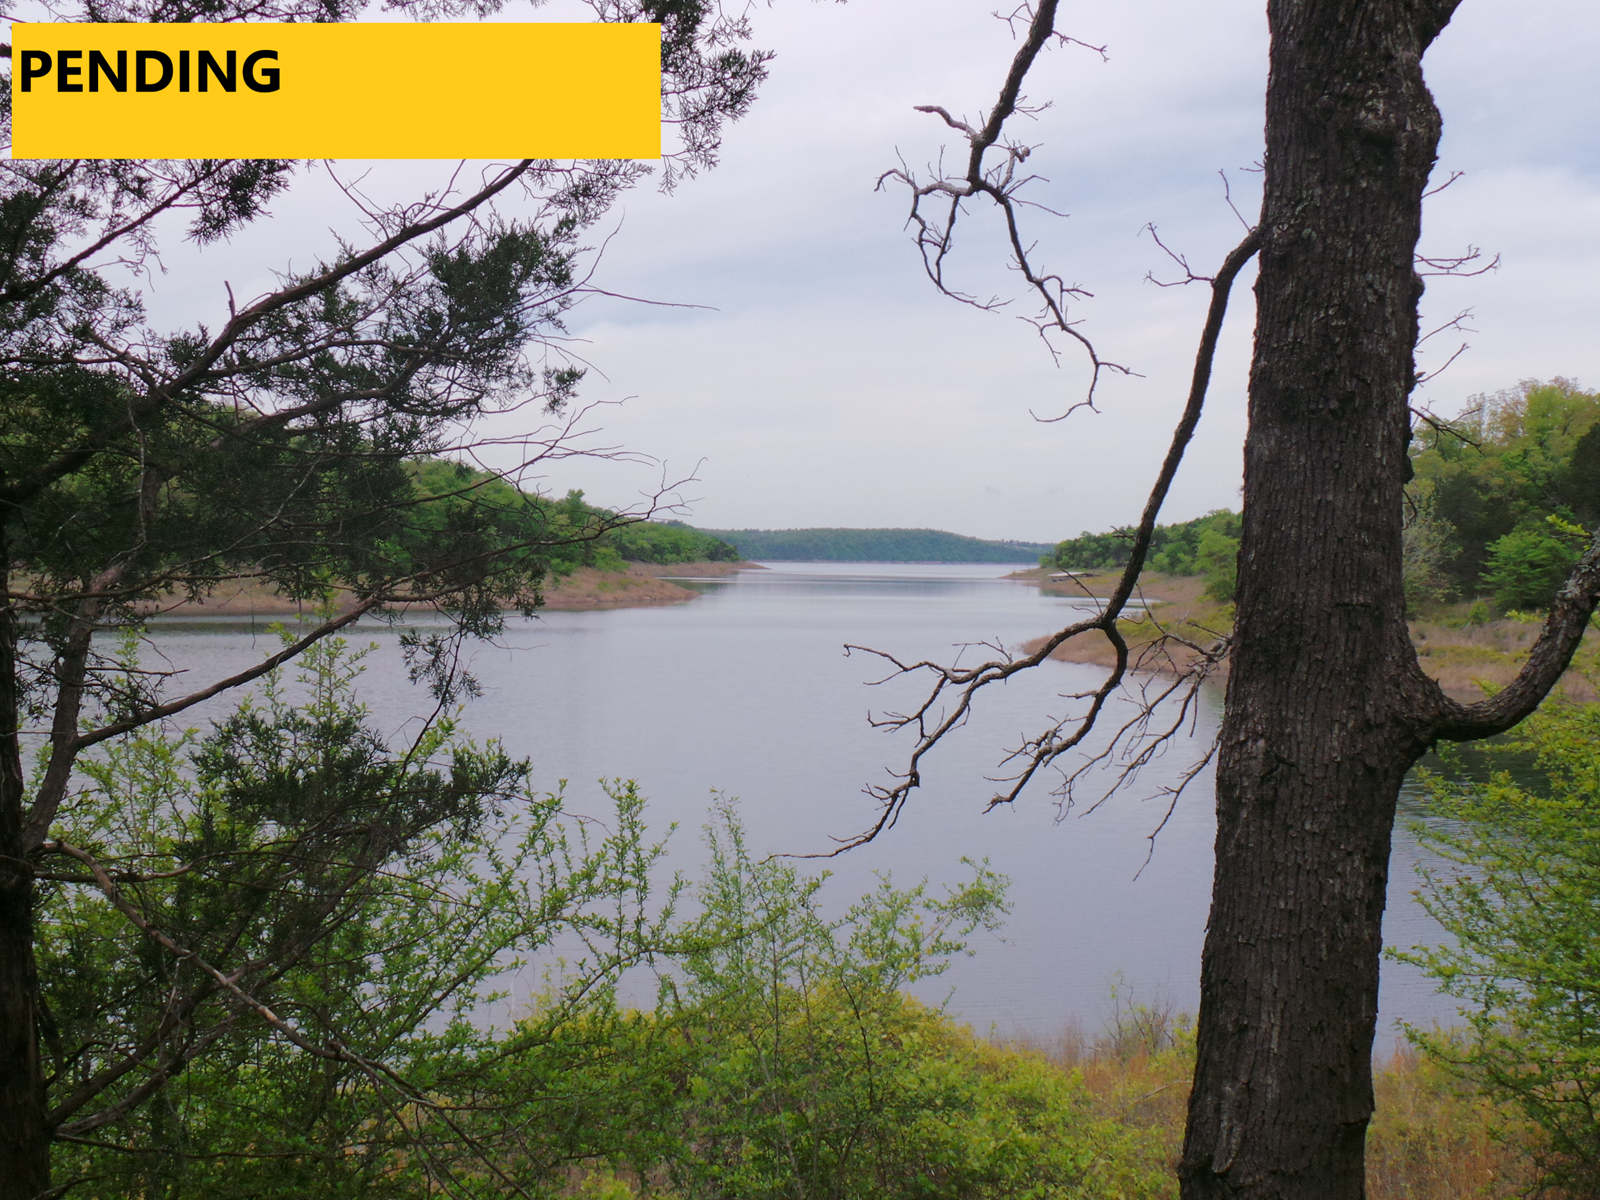 LAKE FRONT PROPERTY FOR SALE ON BULL SHOALS LAKE